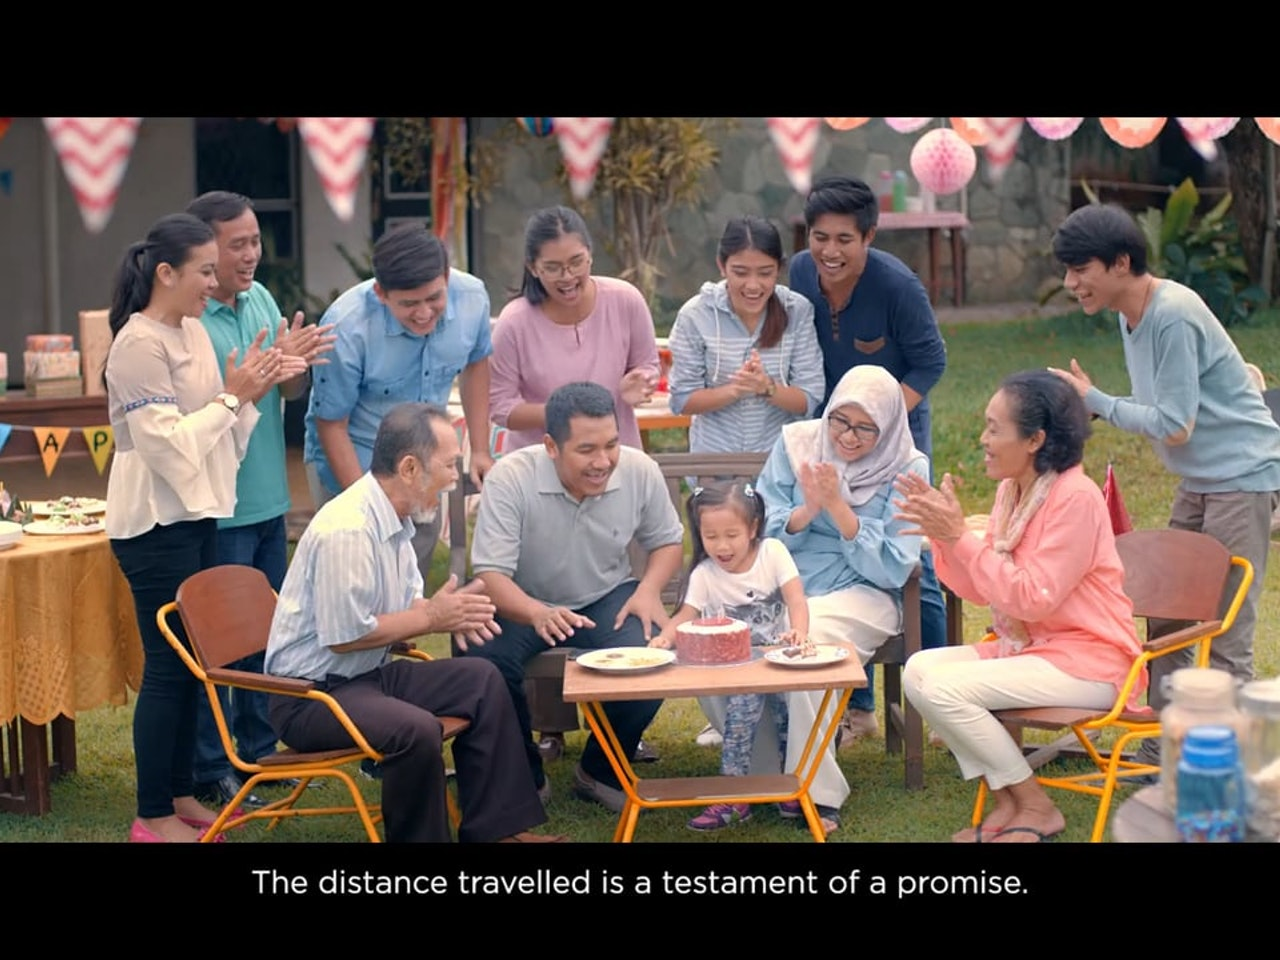 WULING - FORWARD FOR BETTER LIFE